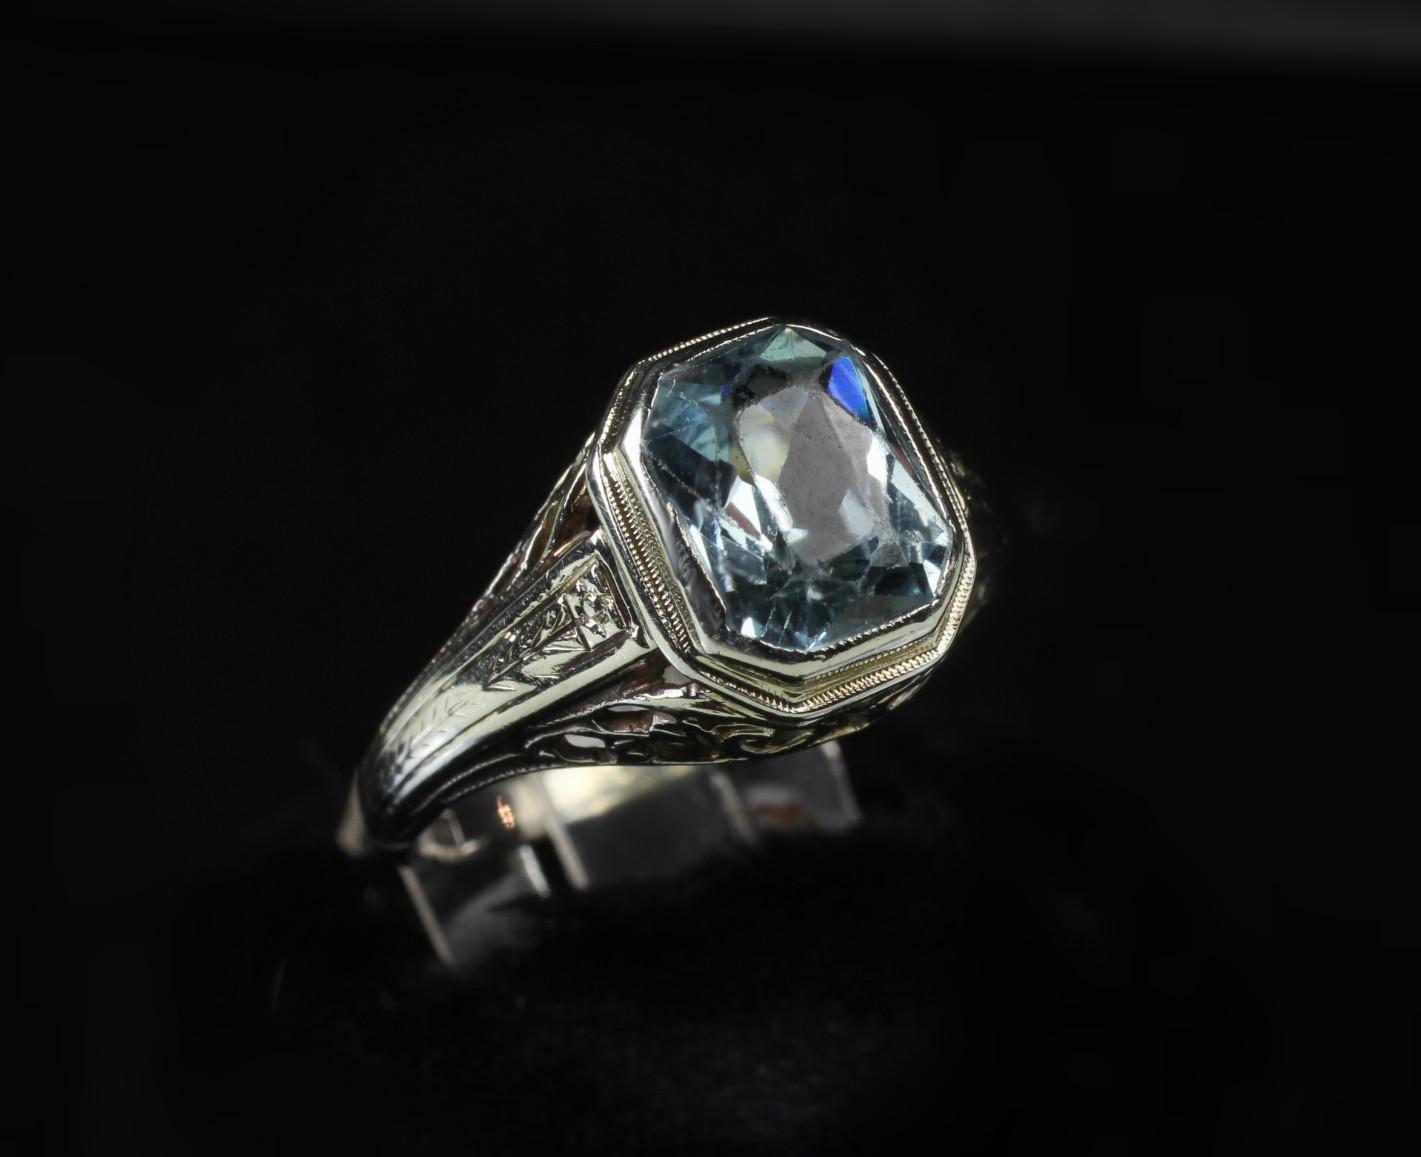 Antique 18K White Gold Aquamarine Filigree Ring